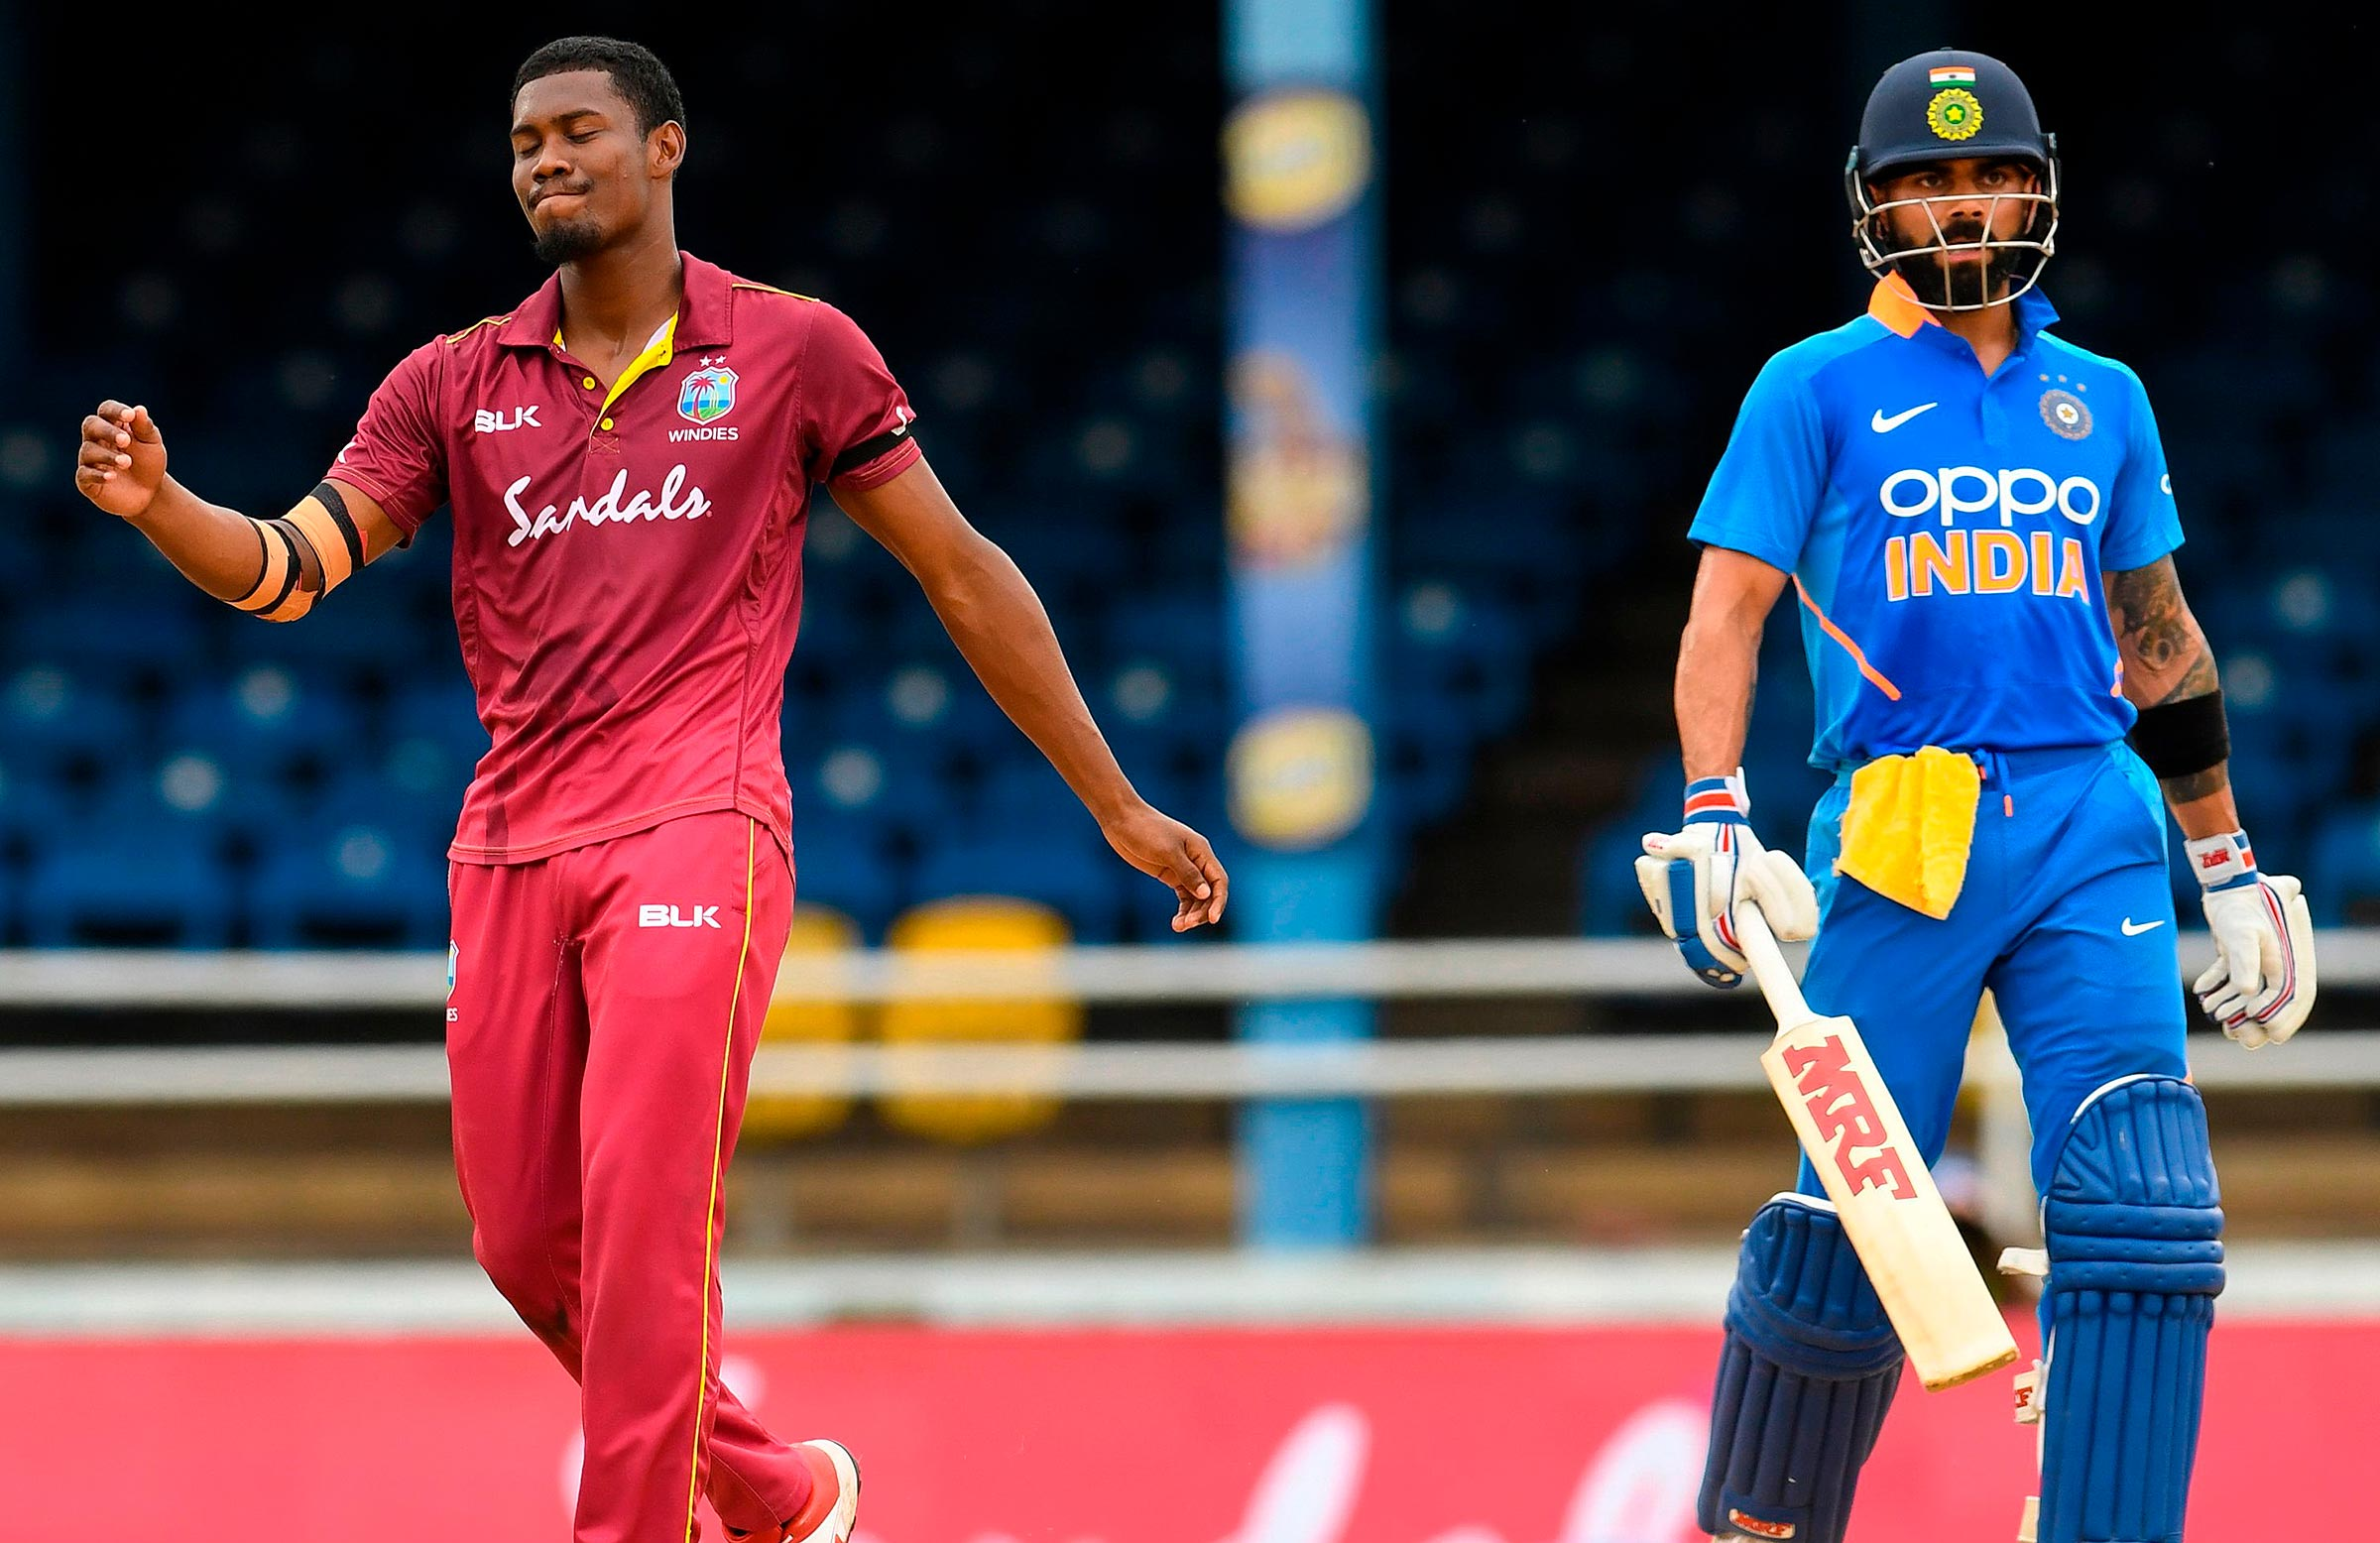 The West Indies let Kohli off the hook early in his innings // Getty